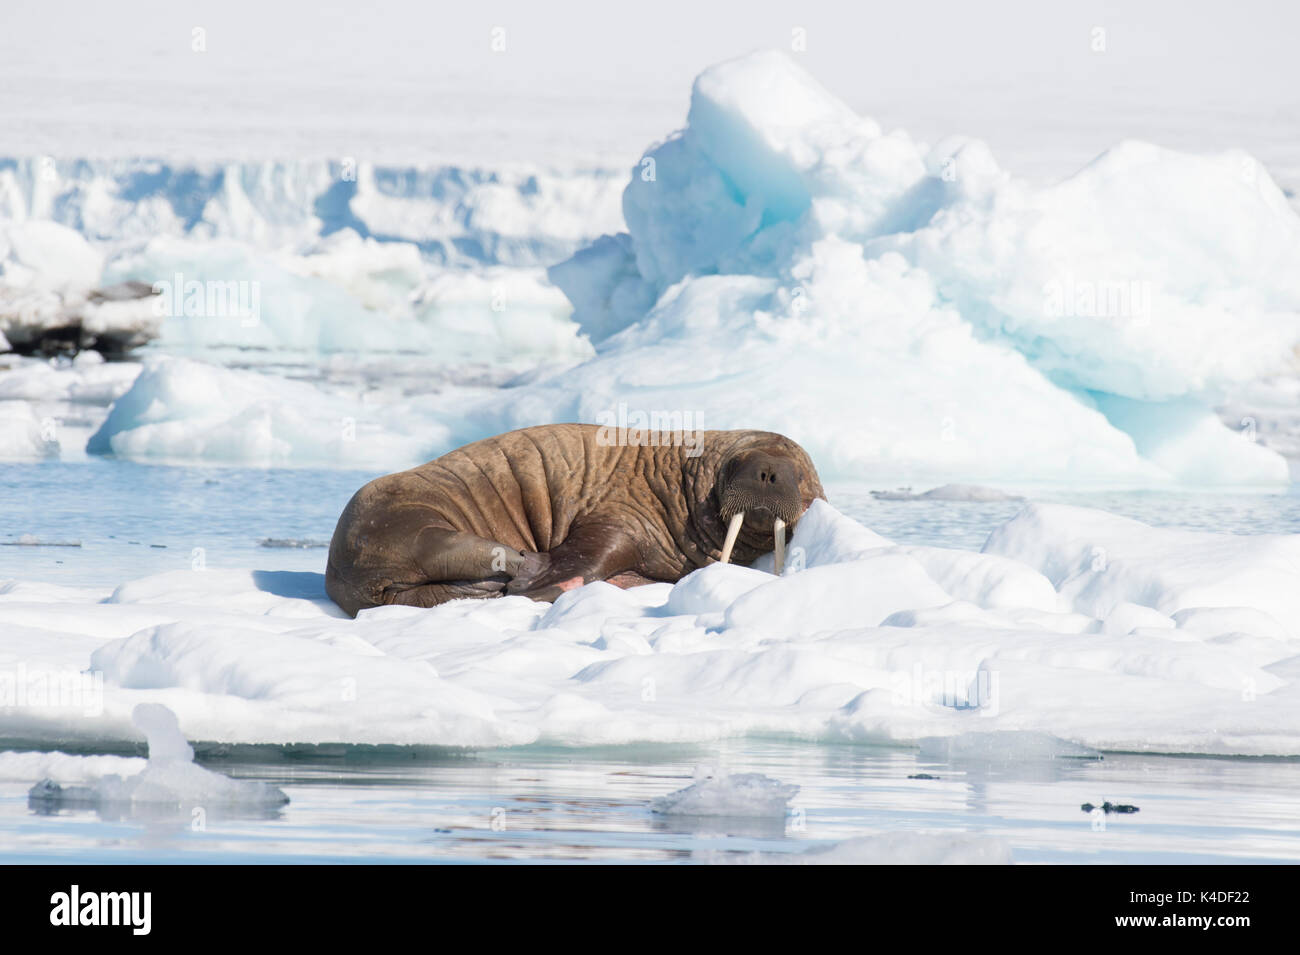 Walrus on ice flow - Stock Image